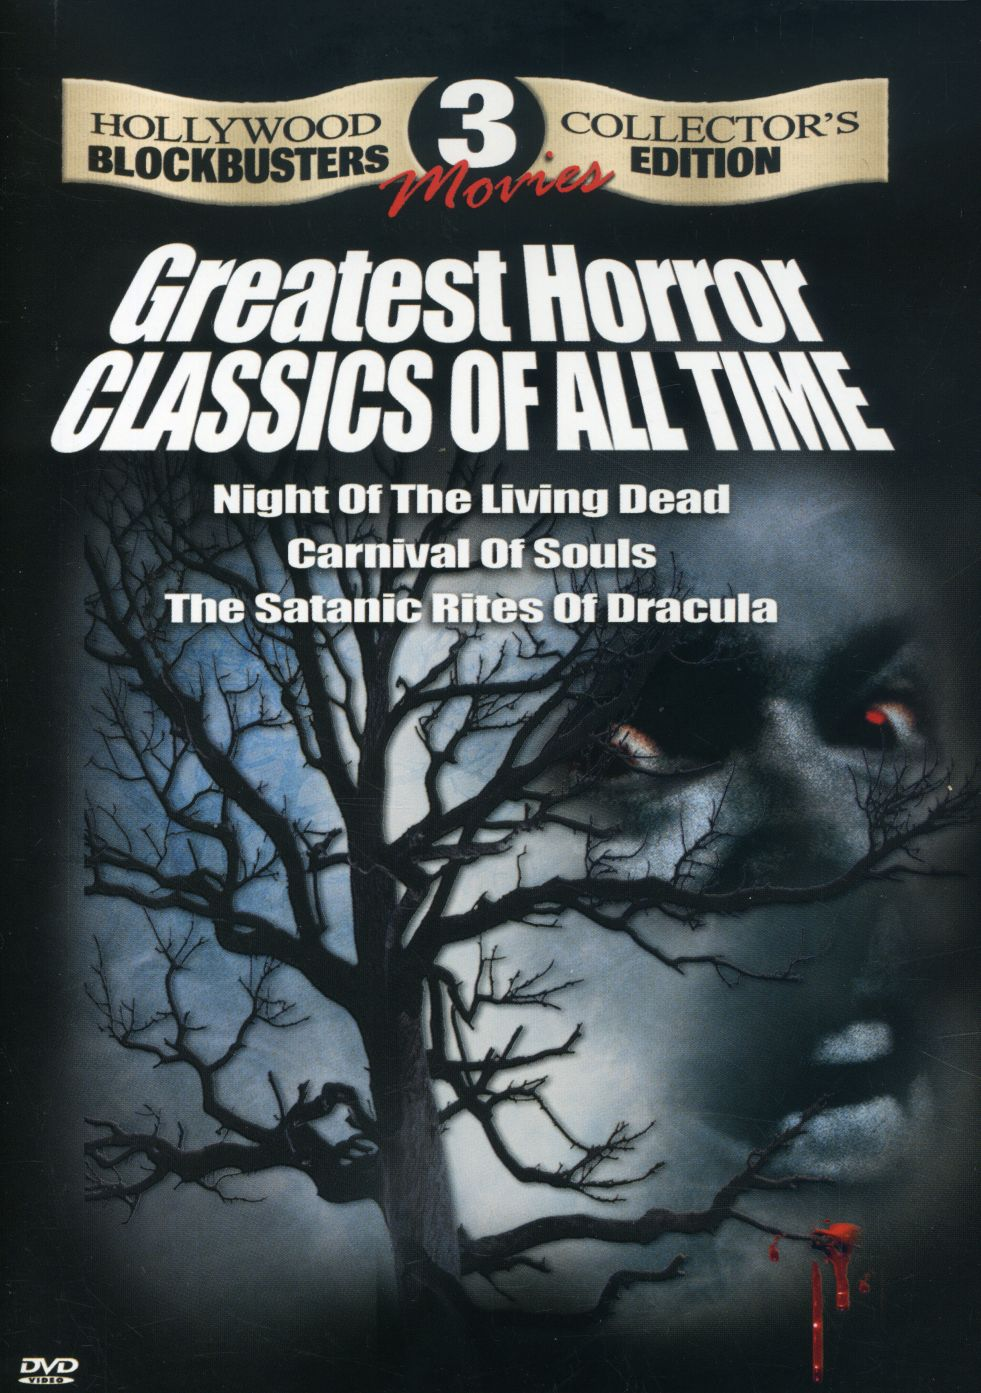 3 Greatest Horror Classics Of All Time (DVD)